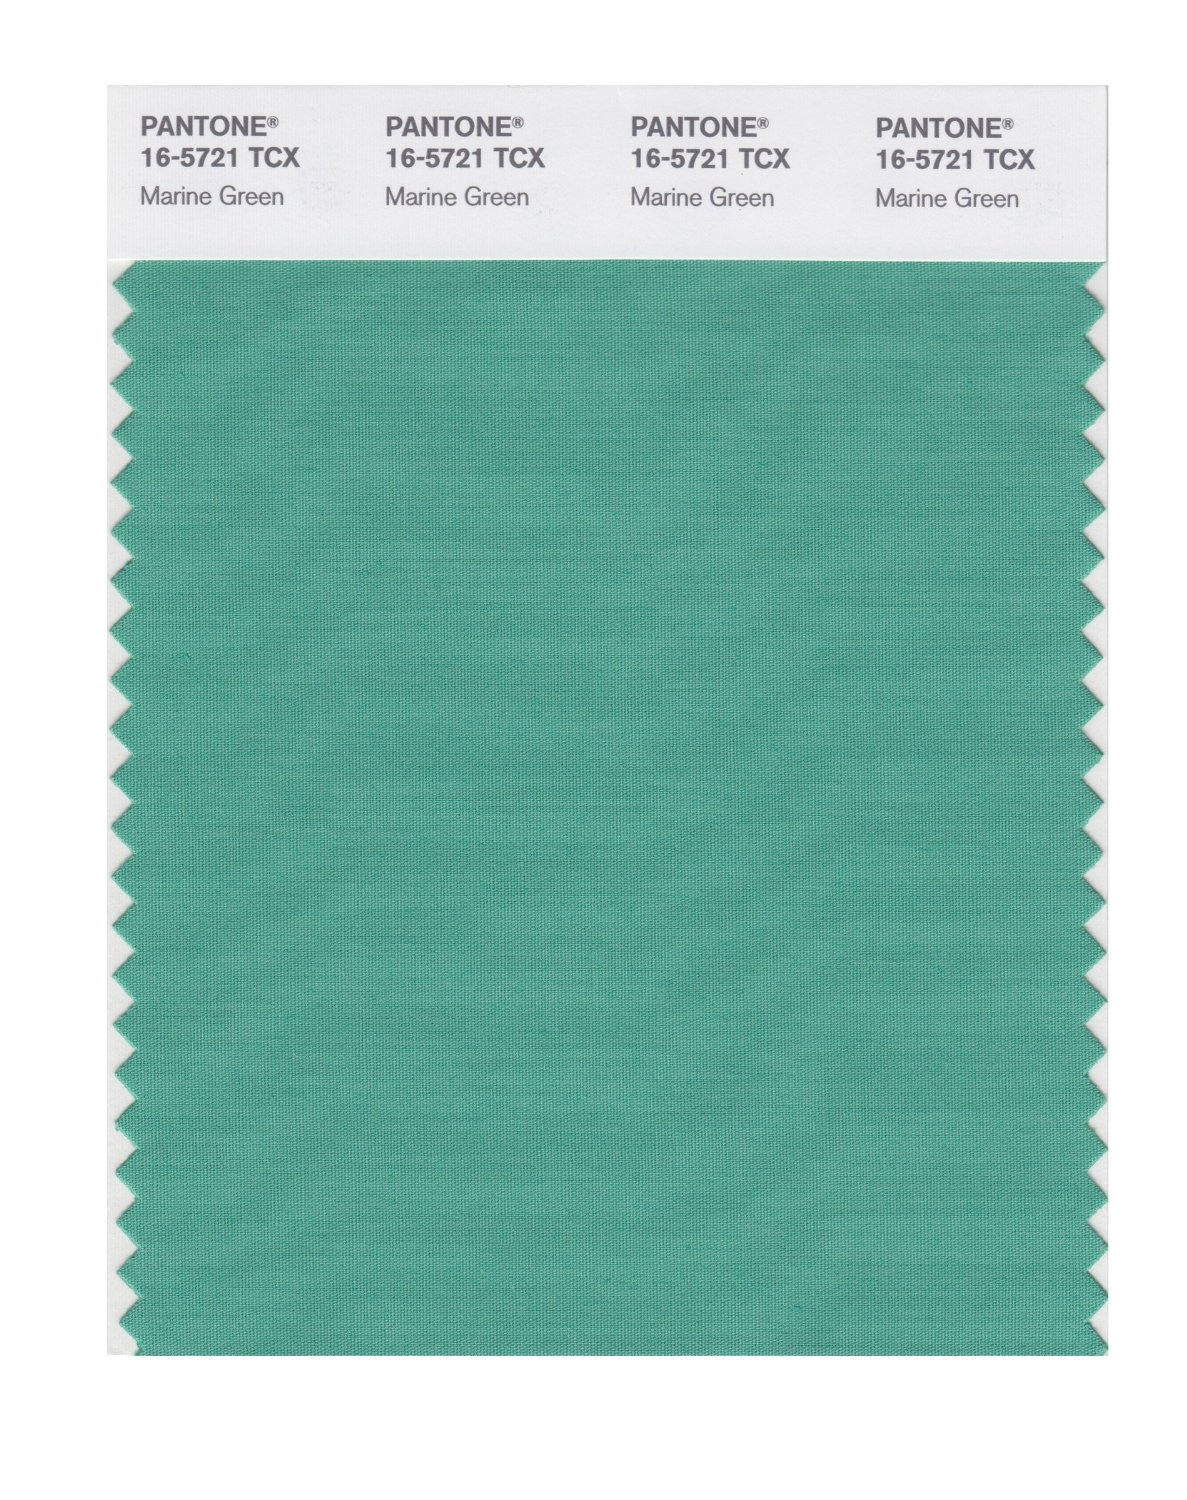 Pantone Smart Swatch 16-5721 Marine Green